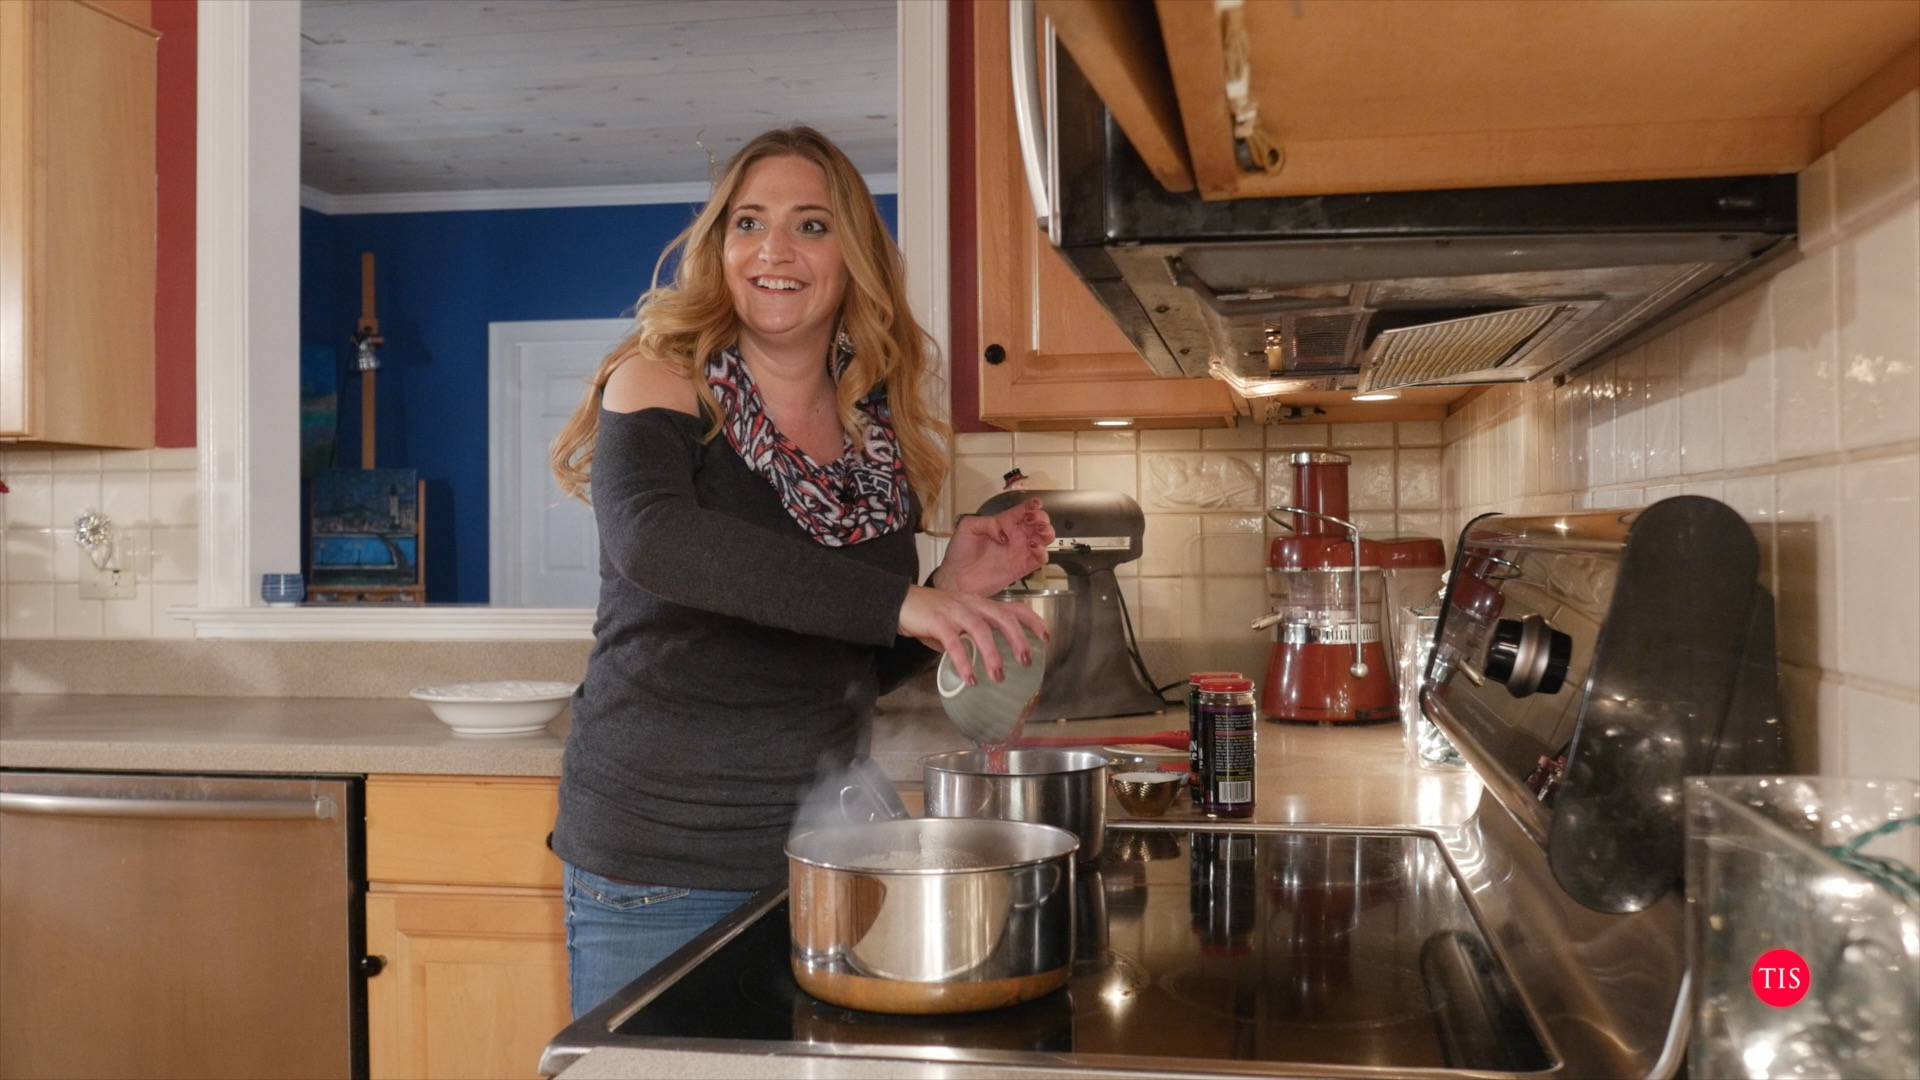 Jennifer Maring cooking in the kitchen...